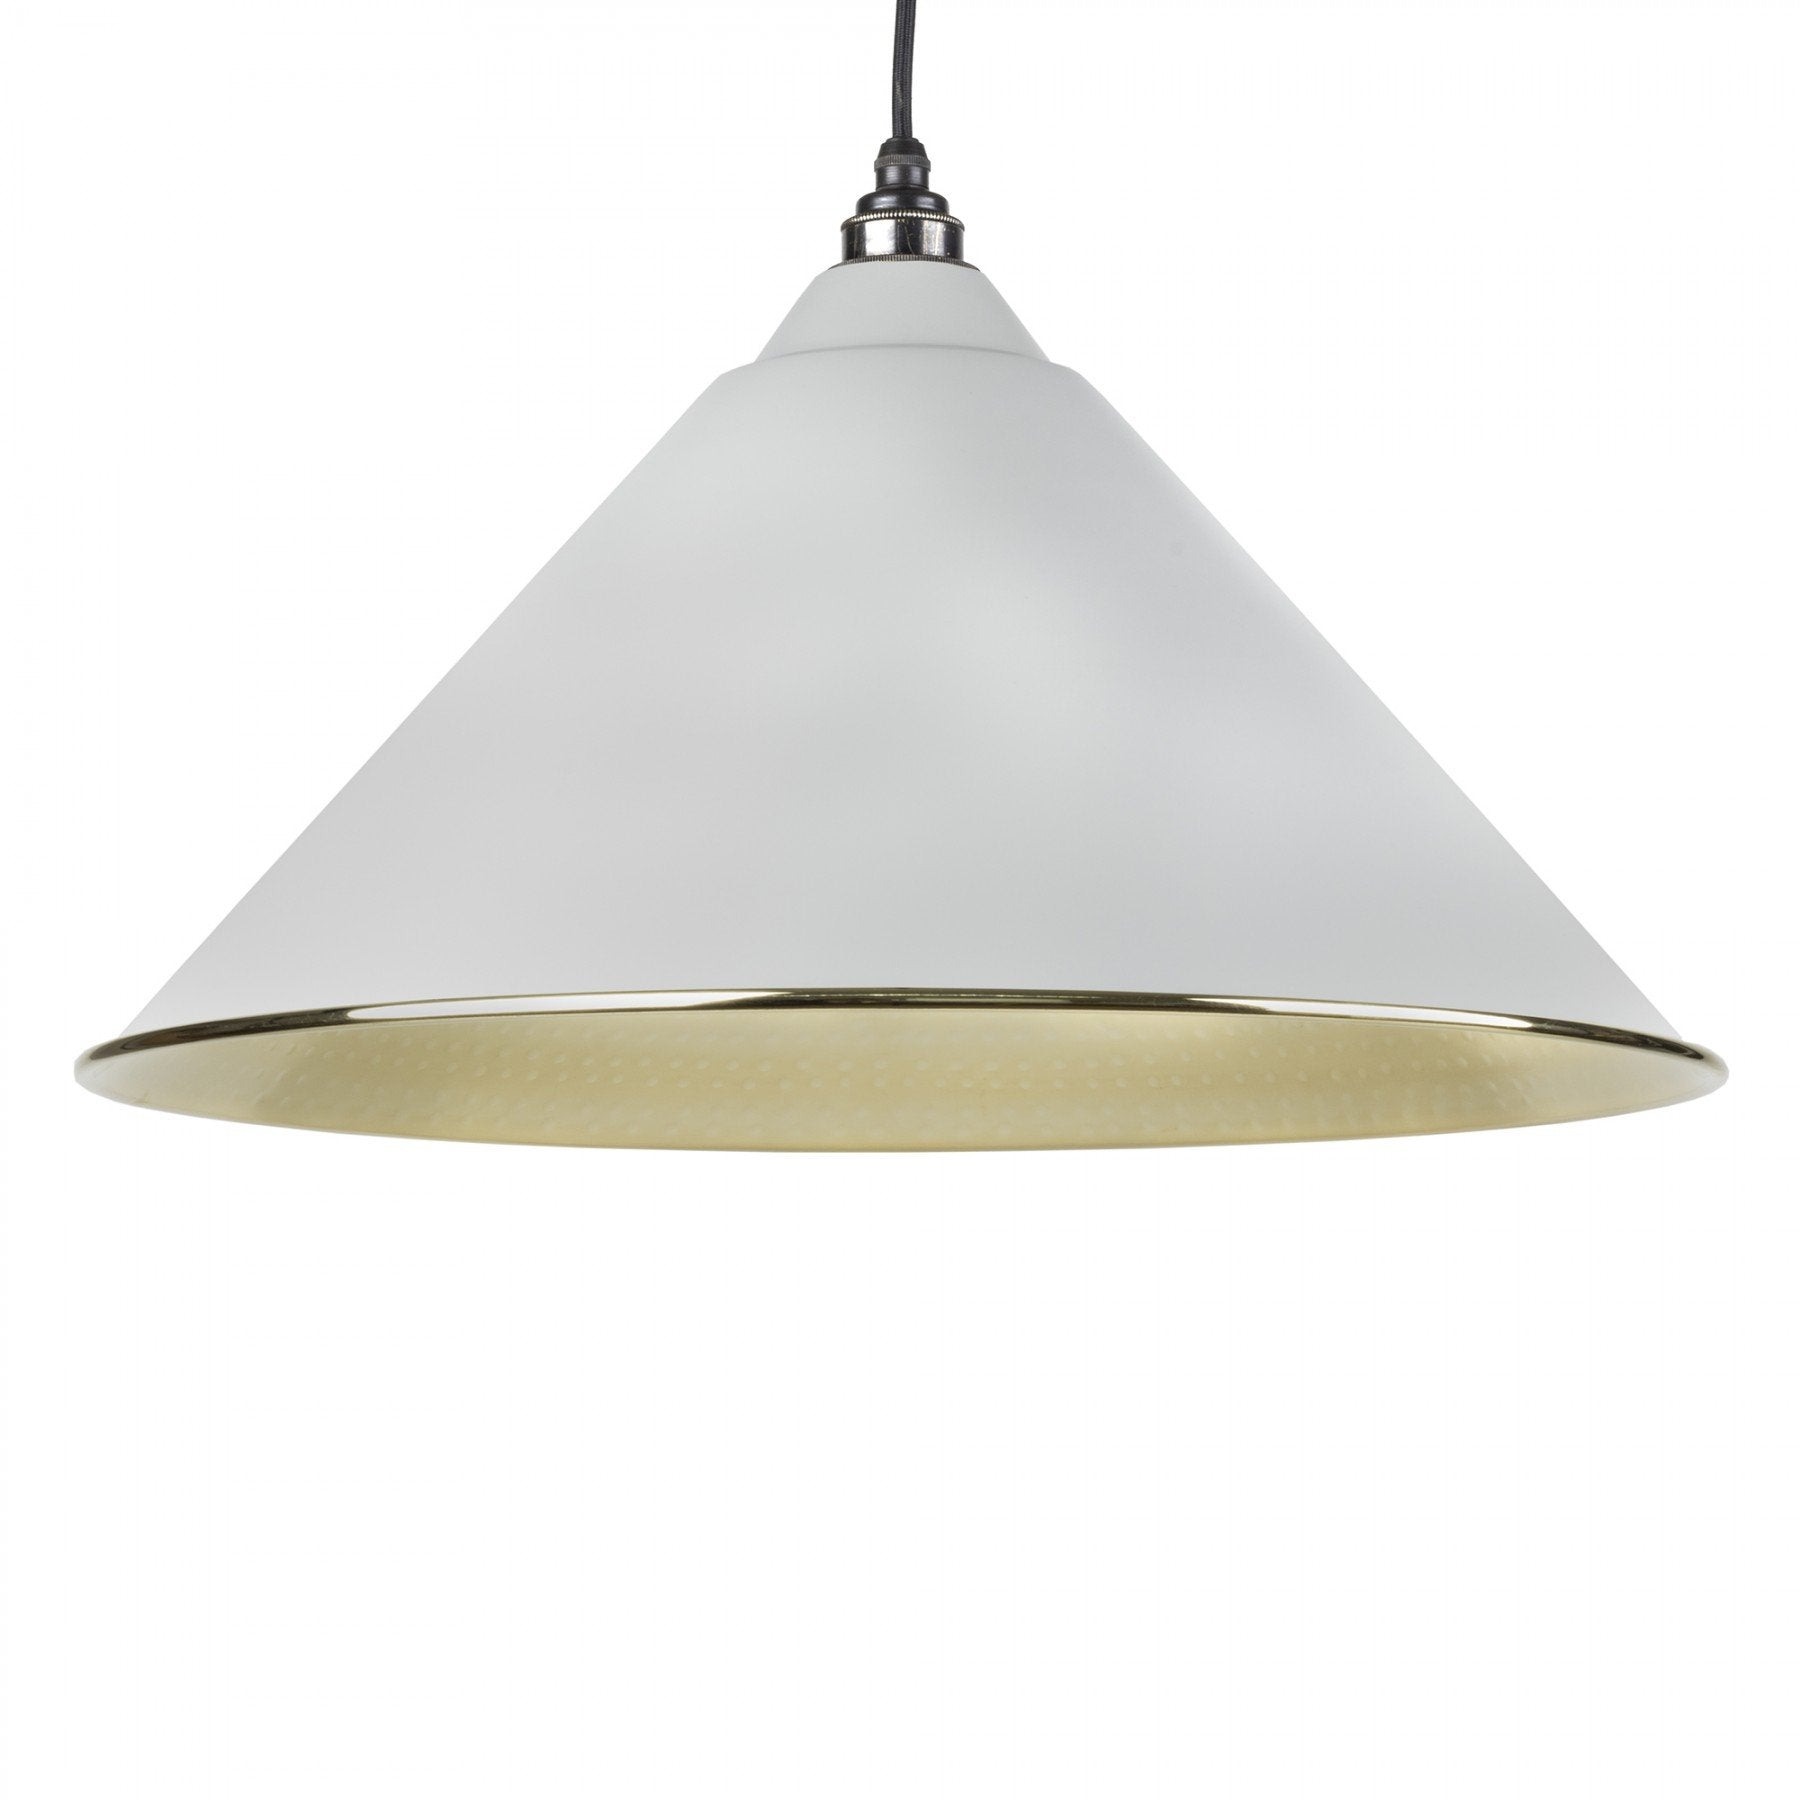 From The Anvil Light Grey & Hammered Brass Interior Hockley Pendant - No.42 Interiors